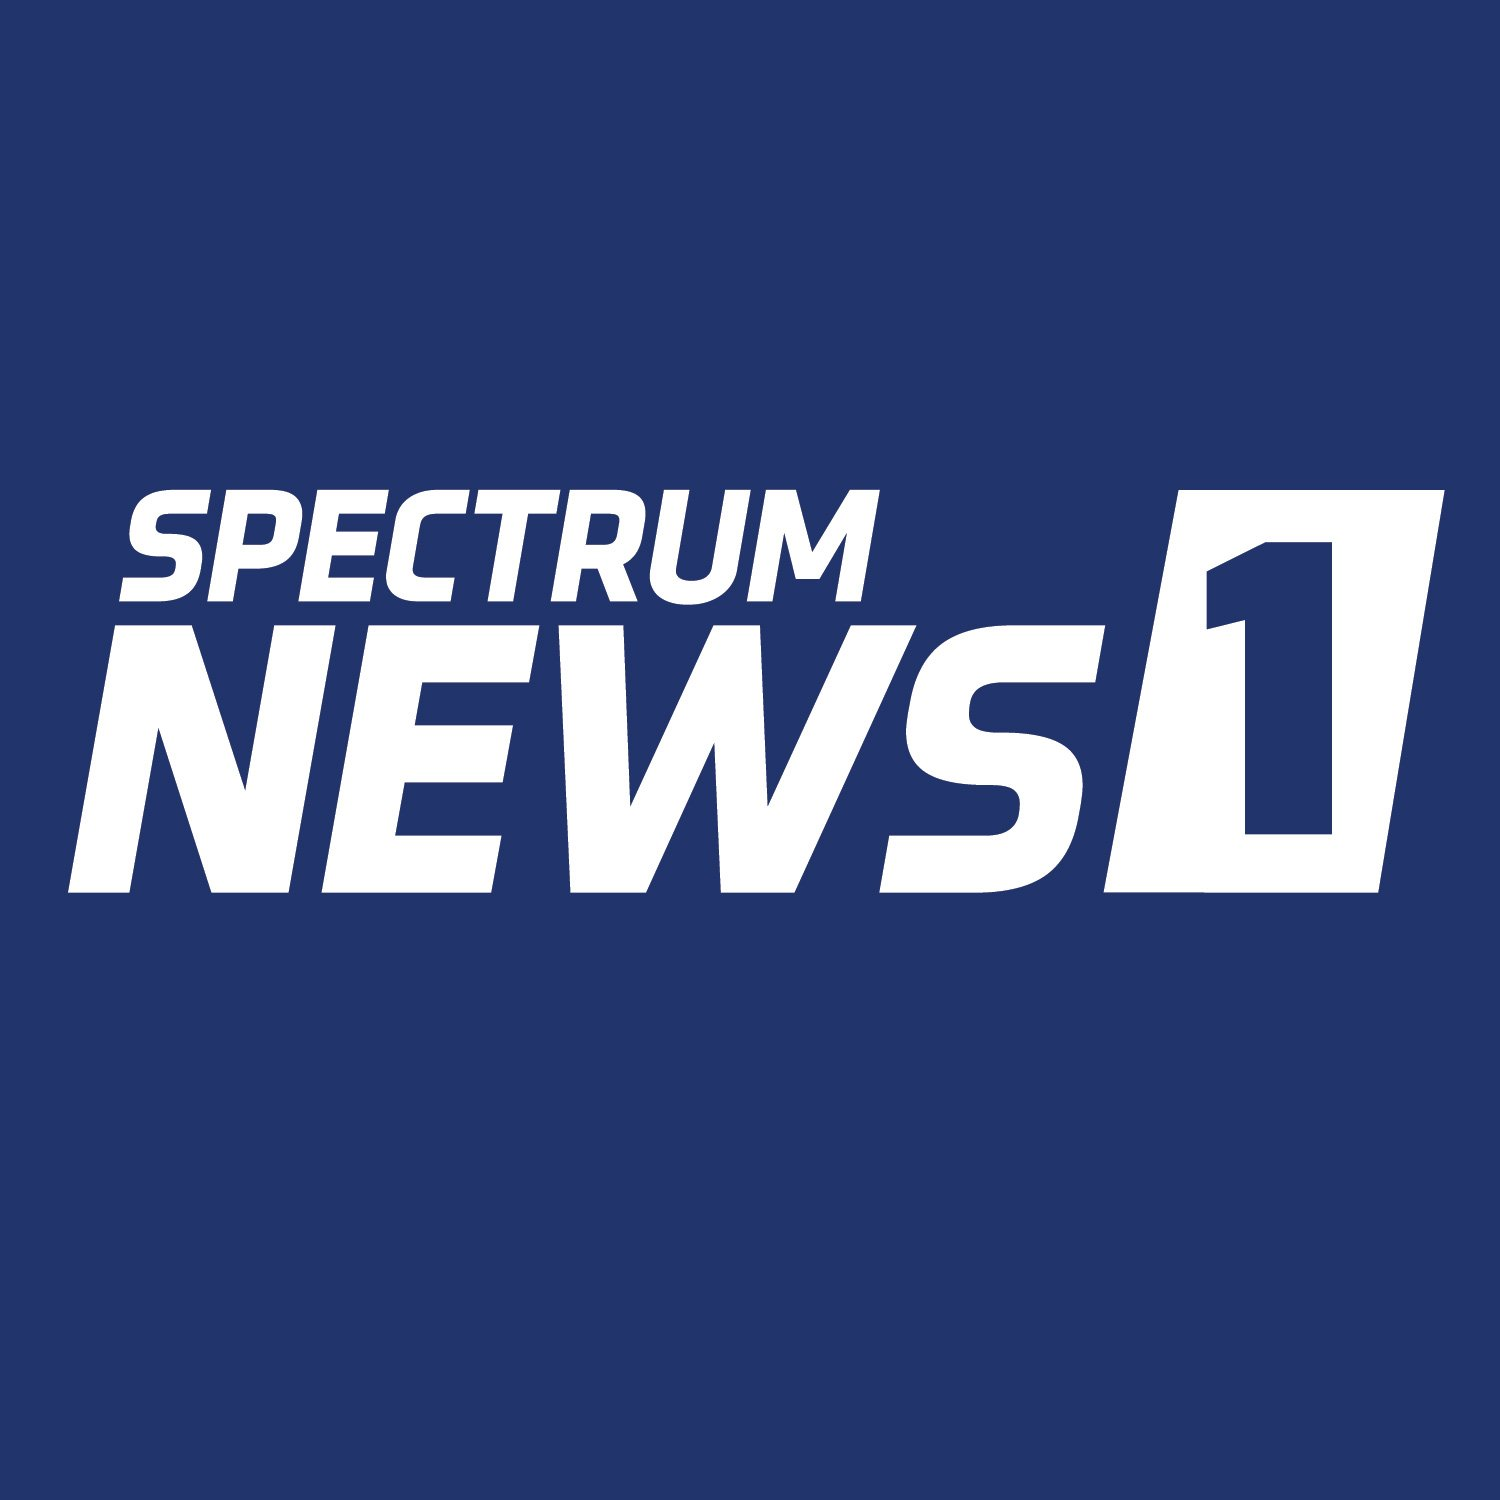 Spectrum News 1 SoCal (@SpecNews1SoCal) | Twitter